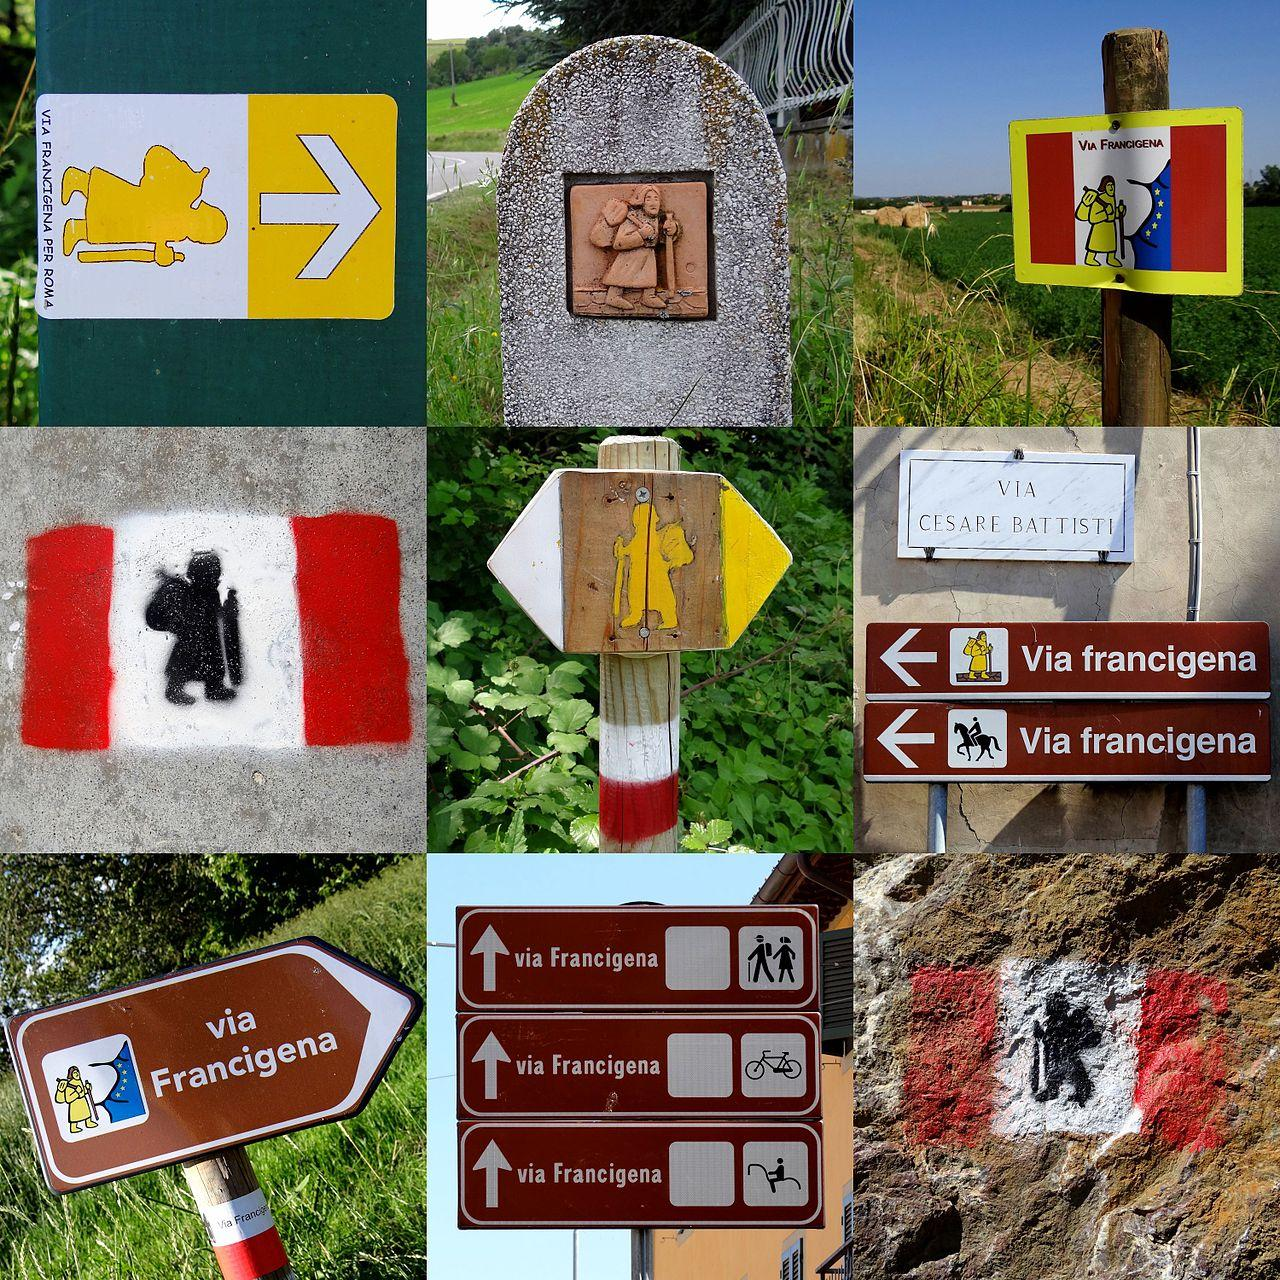 A variety of Via Francigena signposts will help guide your way – © Bjørn Christian Tørrissen / Wikimedia Foundation